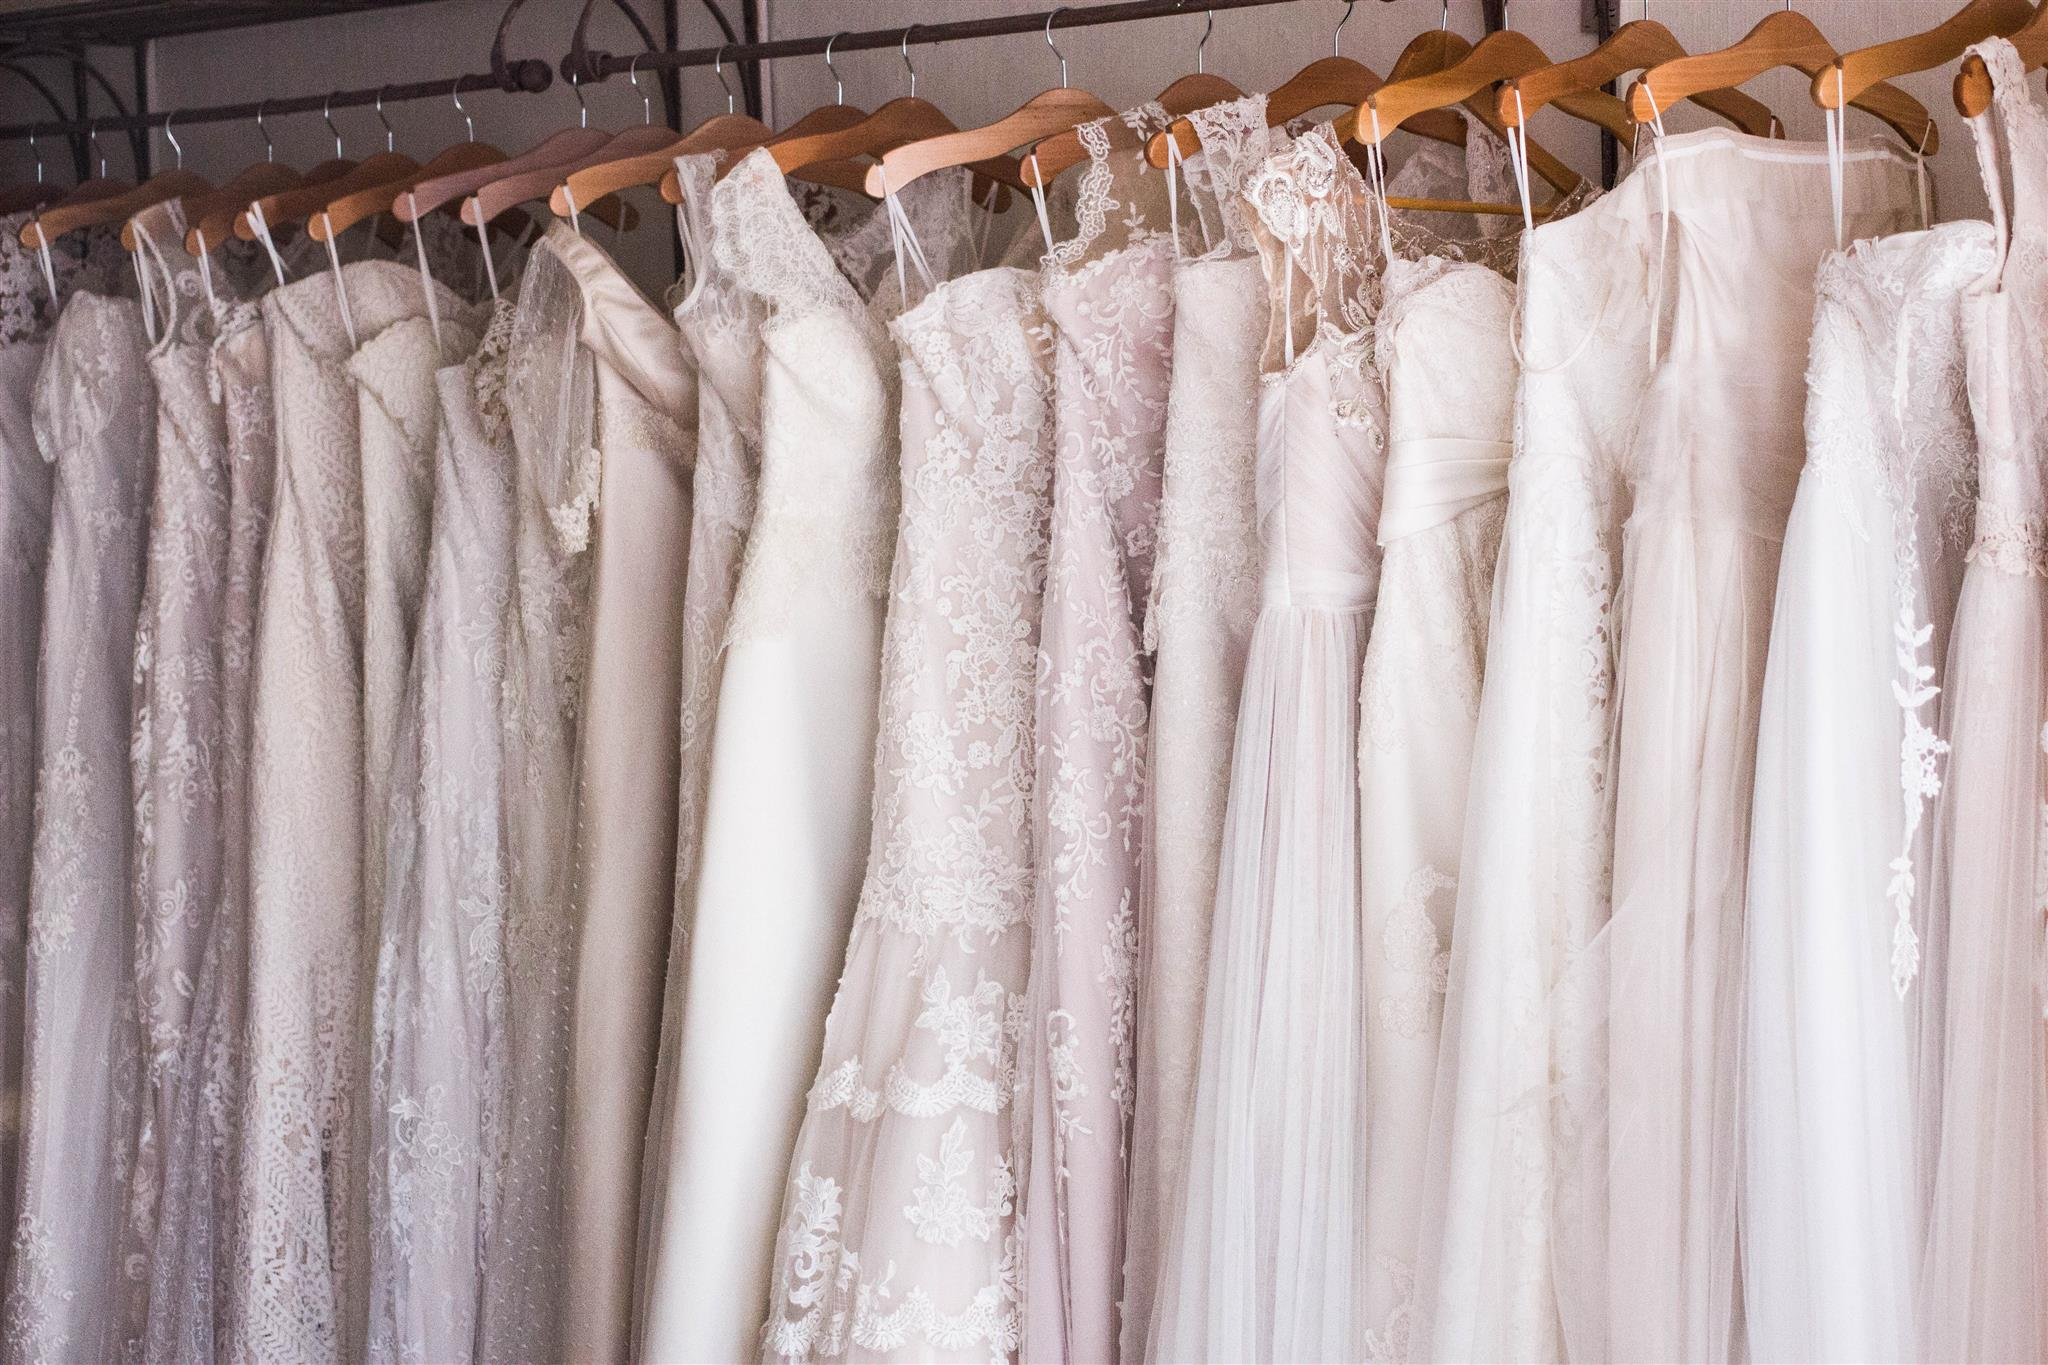 How to DIY Your Wedding Dress: Some Tips from Professionals